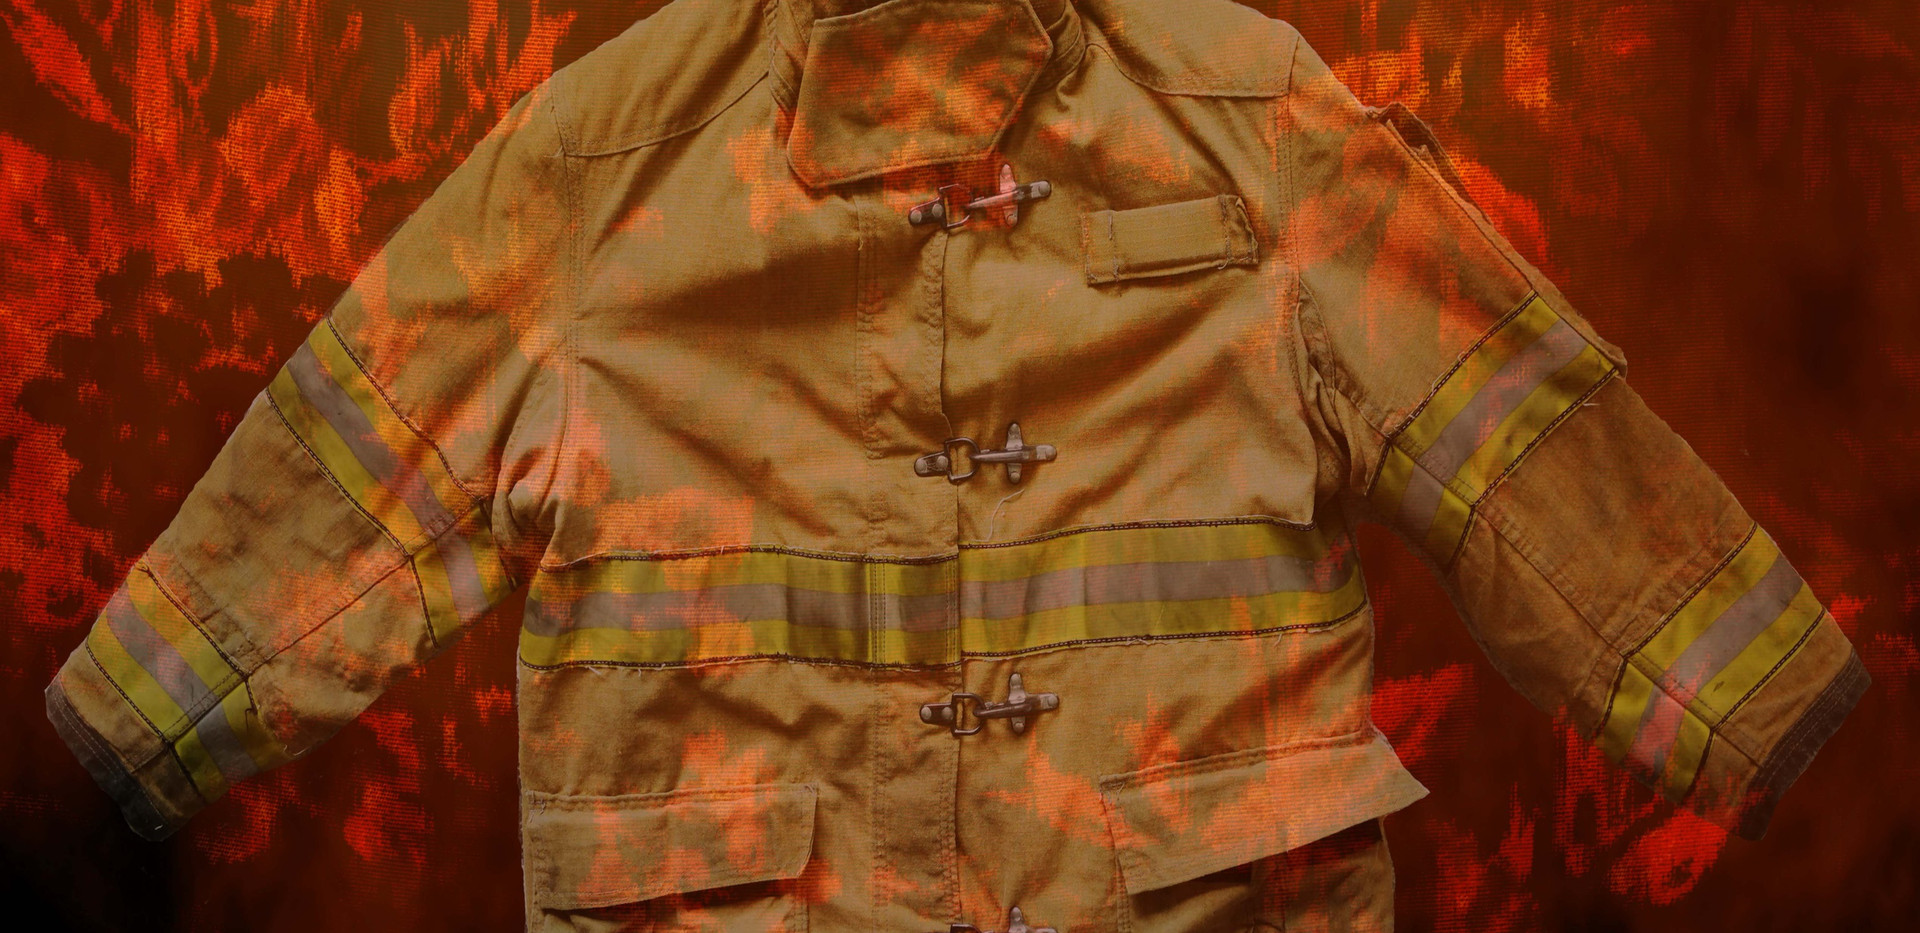 The Firefighter #6